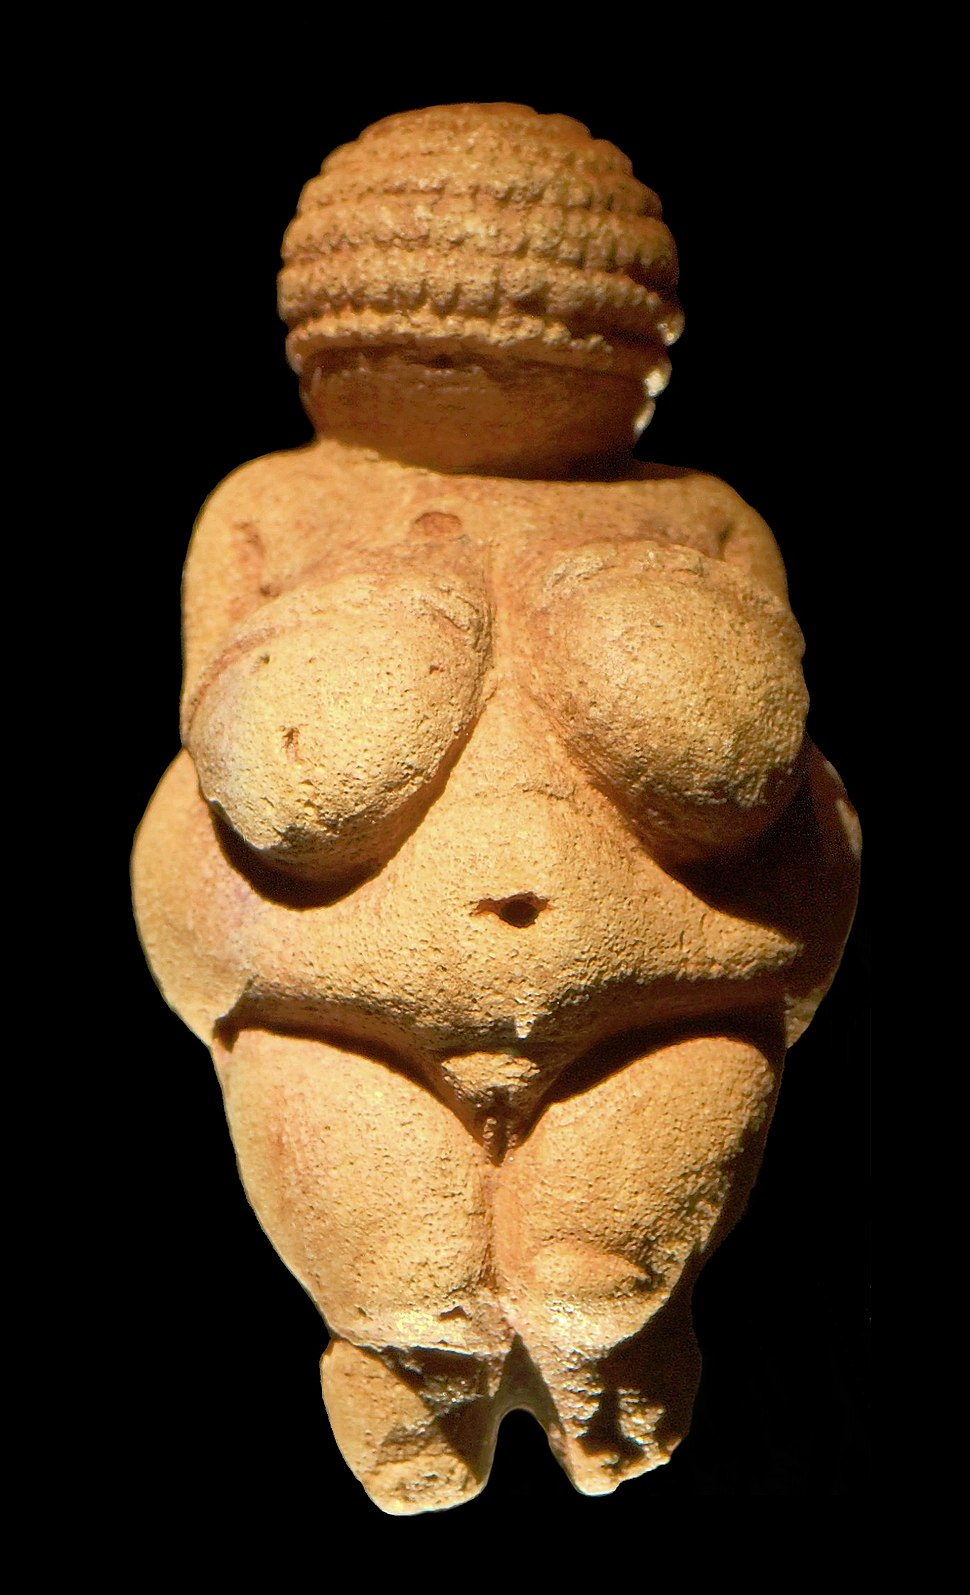 Venus of Willendorf frontview retouched 2